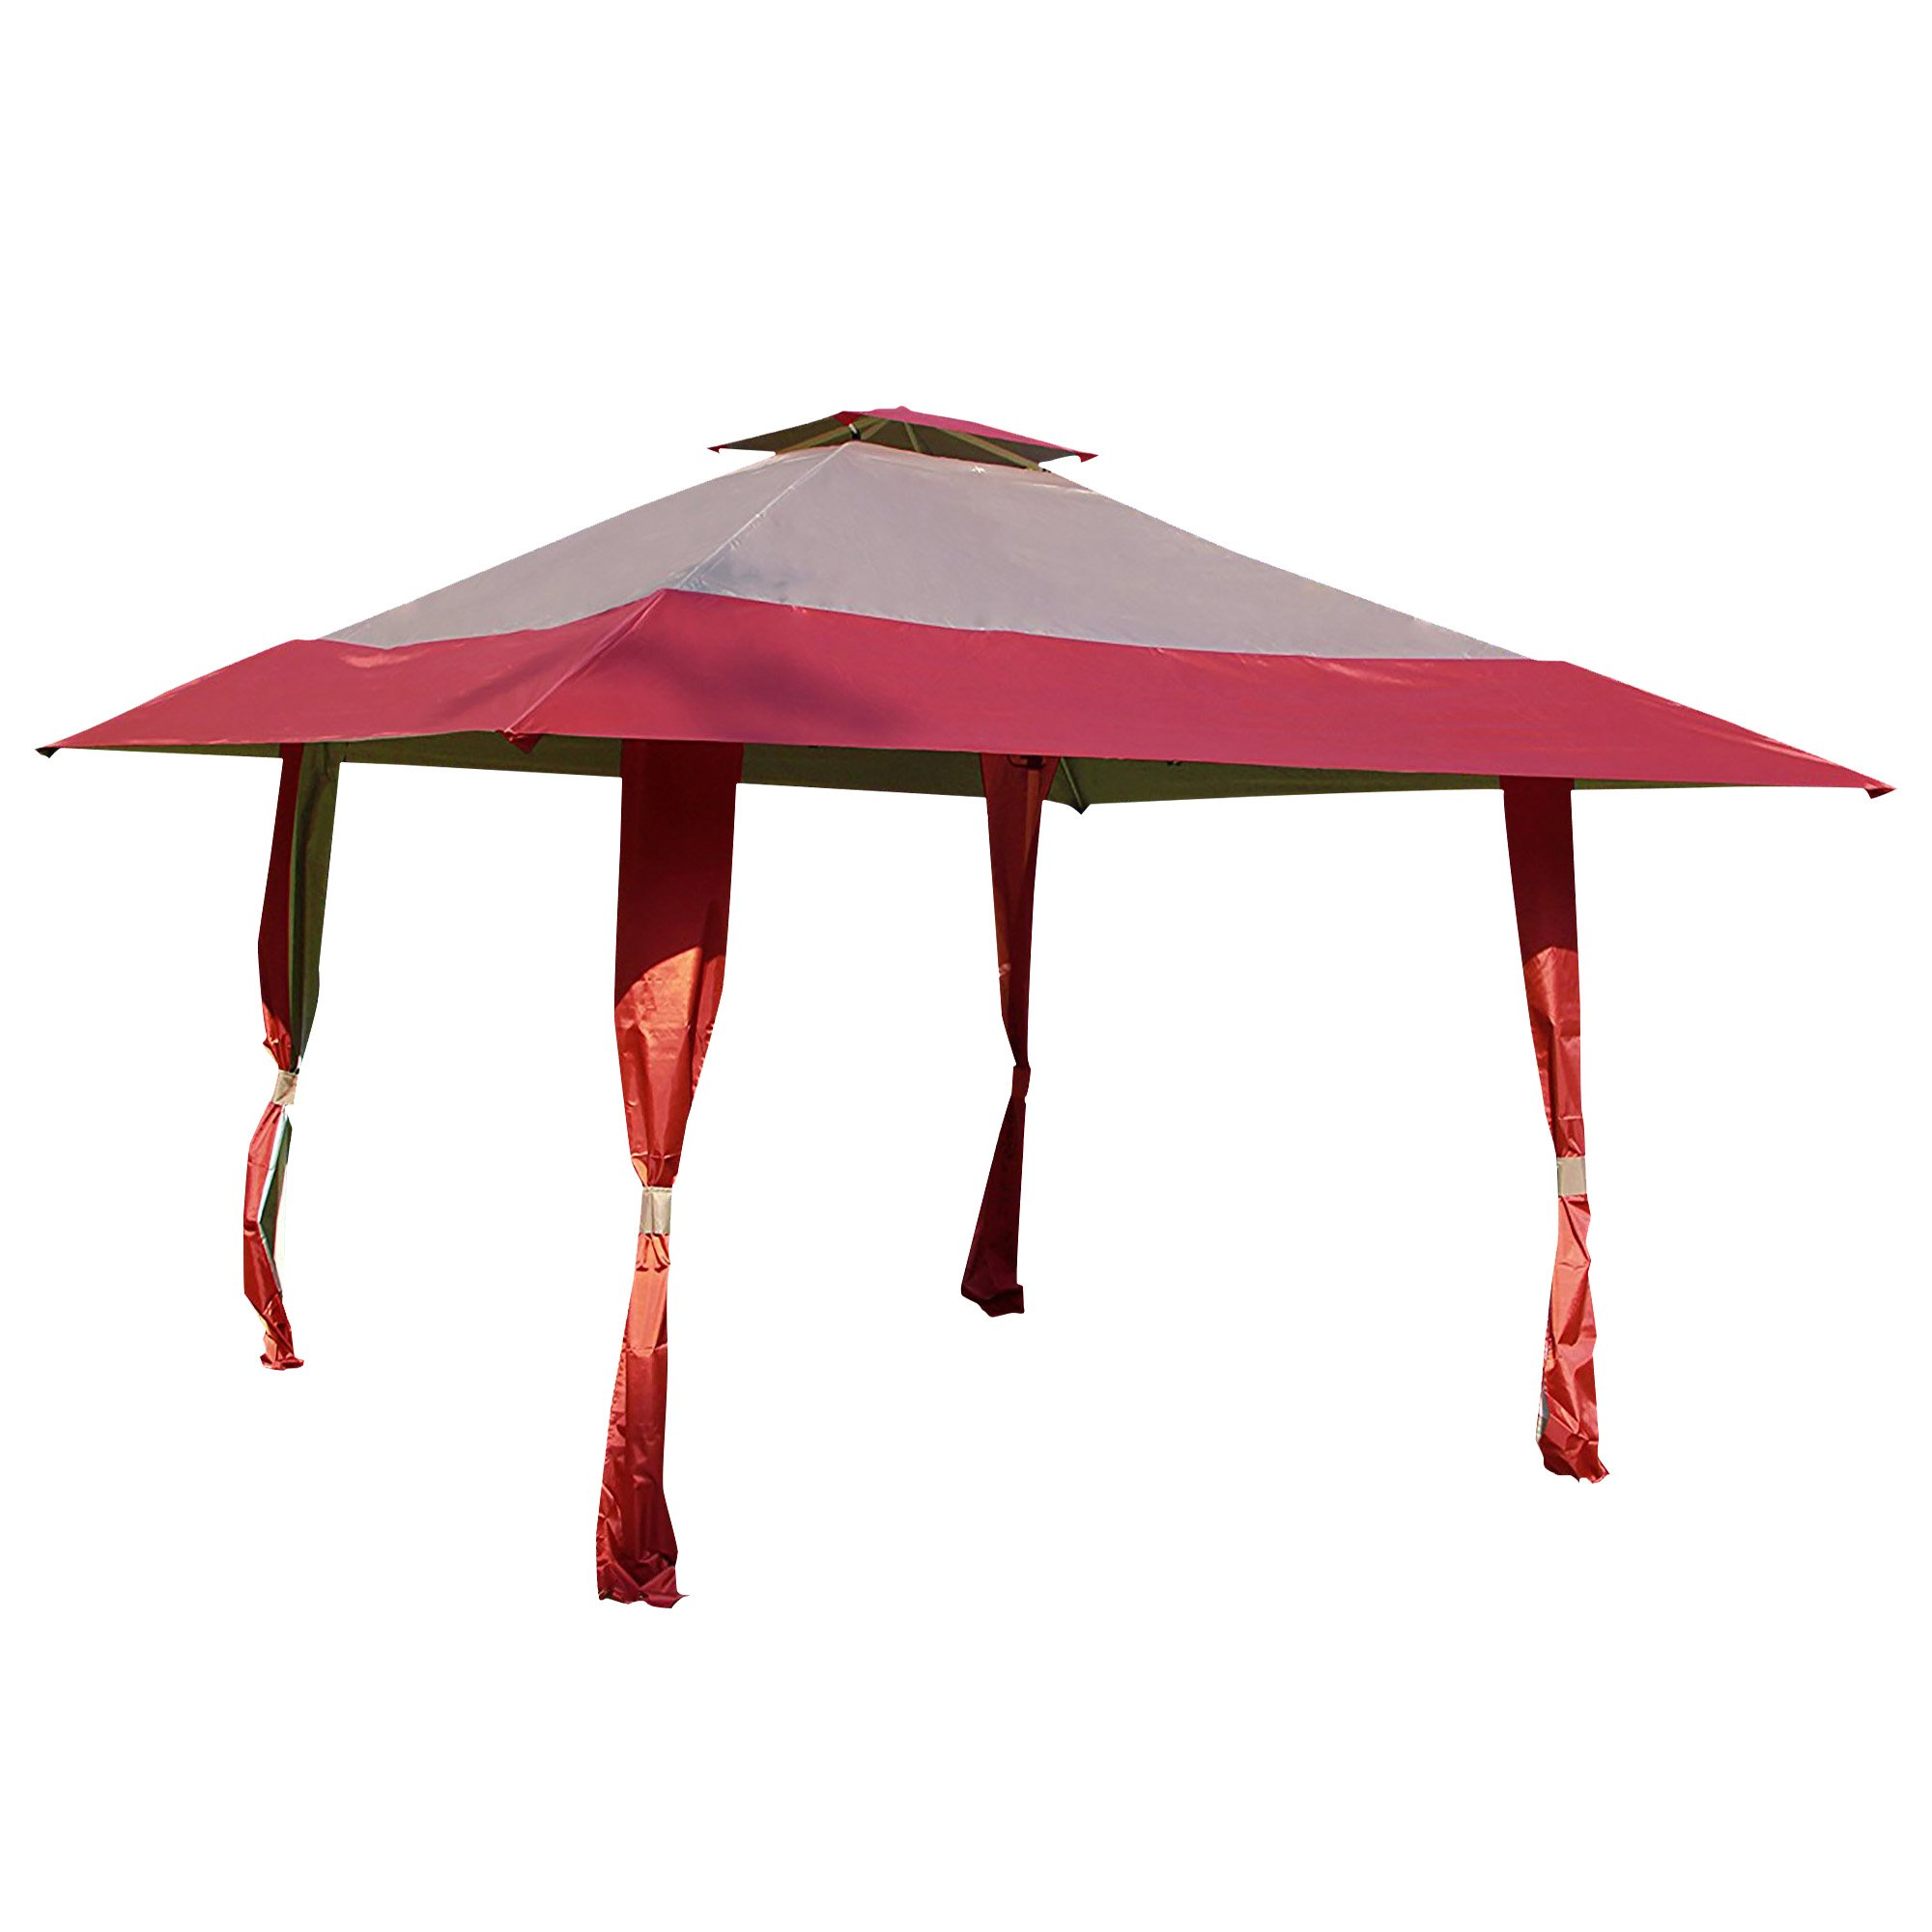 Cloud Mountain 13' x 13' Pop Up Canopy Outdoor Yard Patio Double Roof Easy Set Up Canopy Tent for Party Event, Burgundy Tan